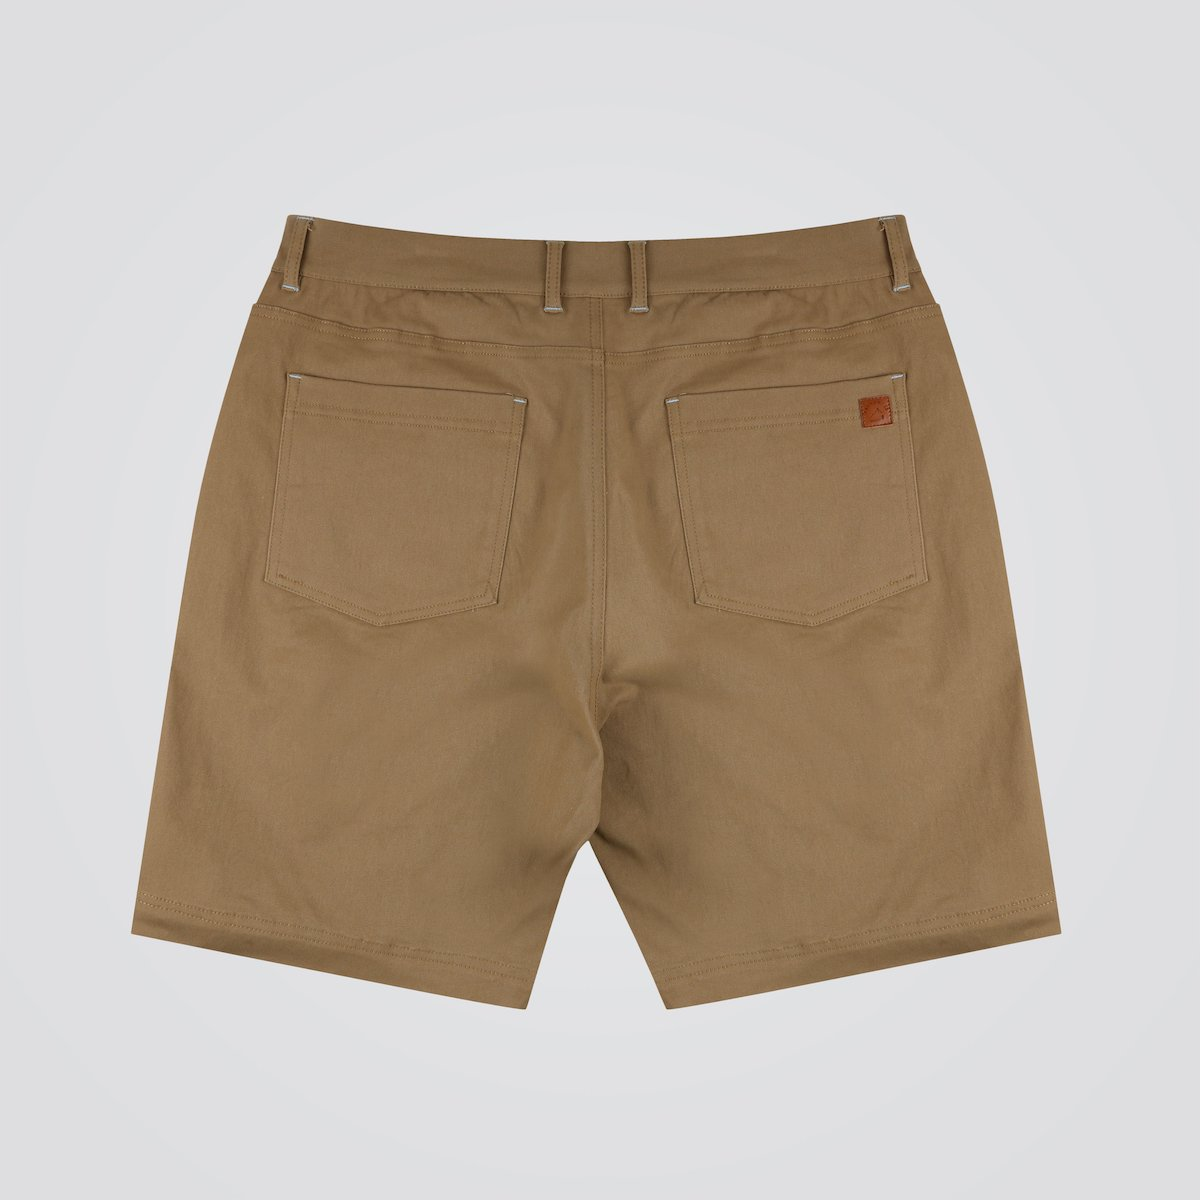 Nomad Short - Burrow Brown image 4